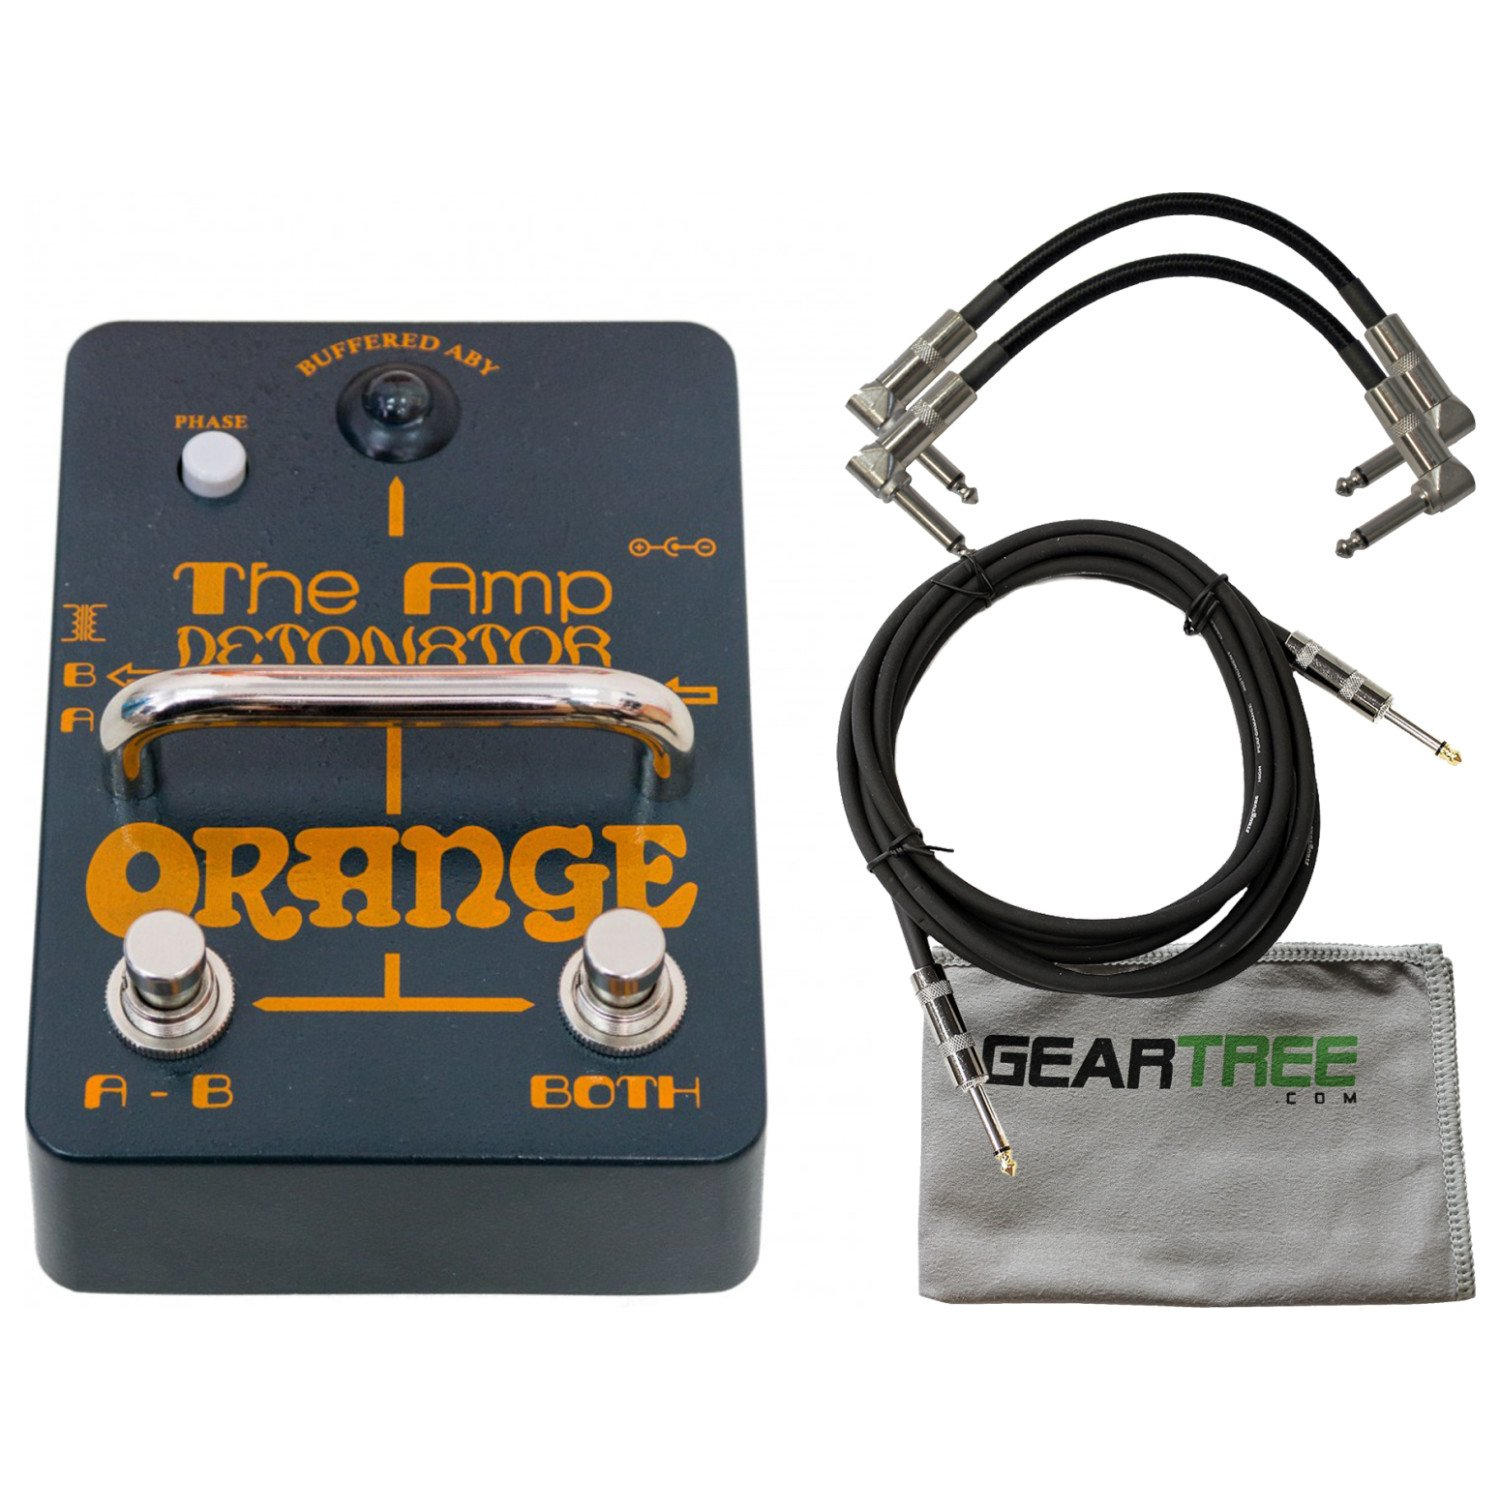 Orange AMP-DETONATOR Buffered Active ABY Stomp Box w/Cleaning Cloth and 3 Cable